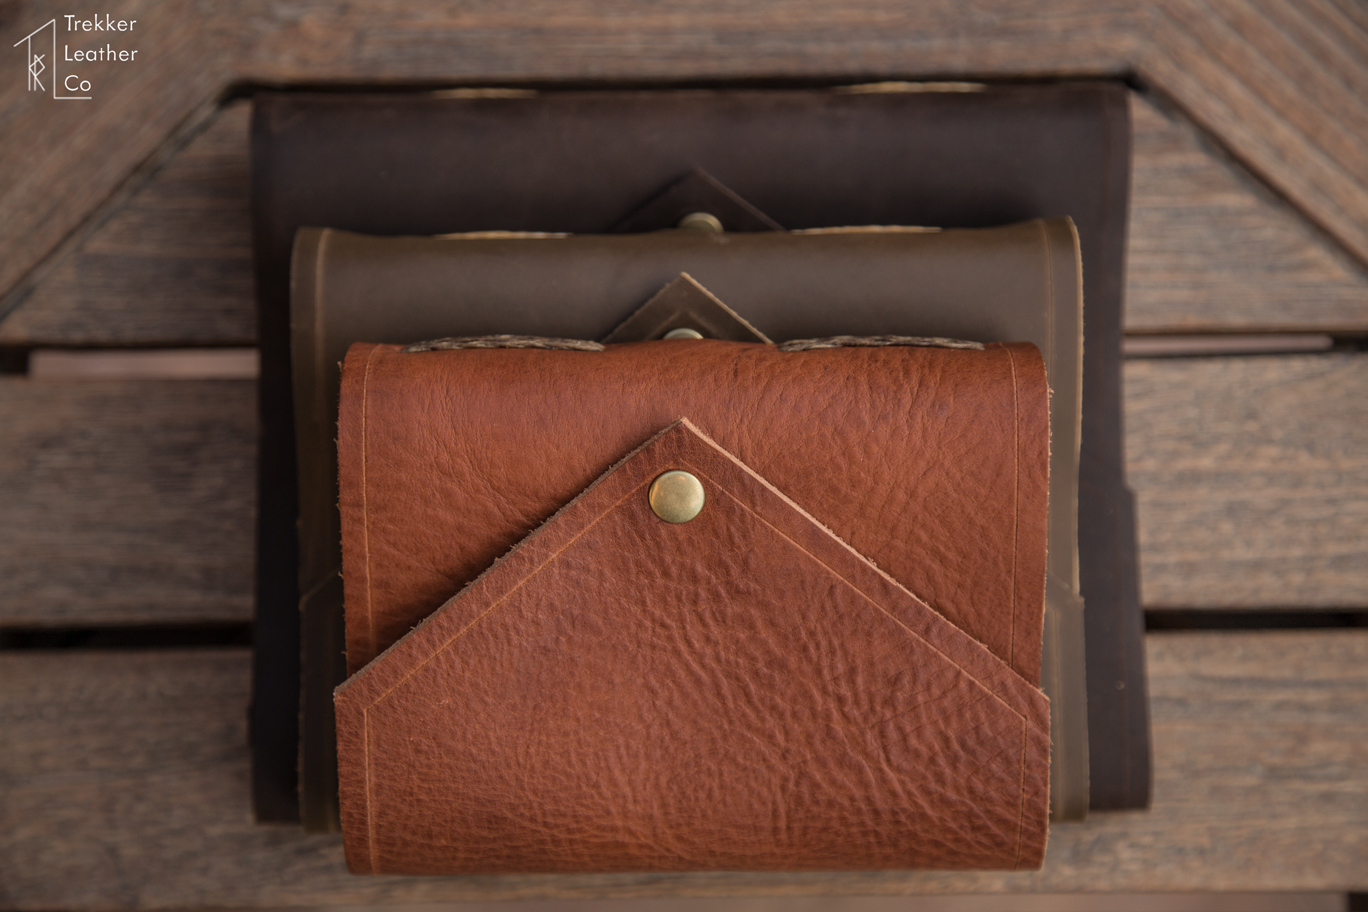 Stacked leather journals with an envelope style by Trekker Leather